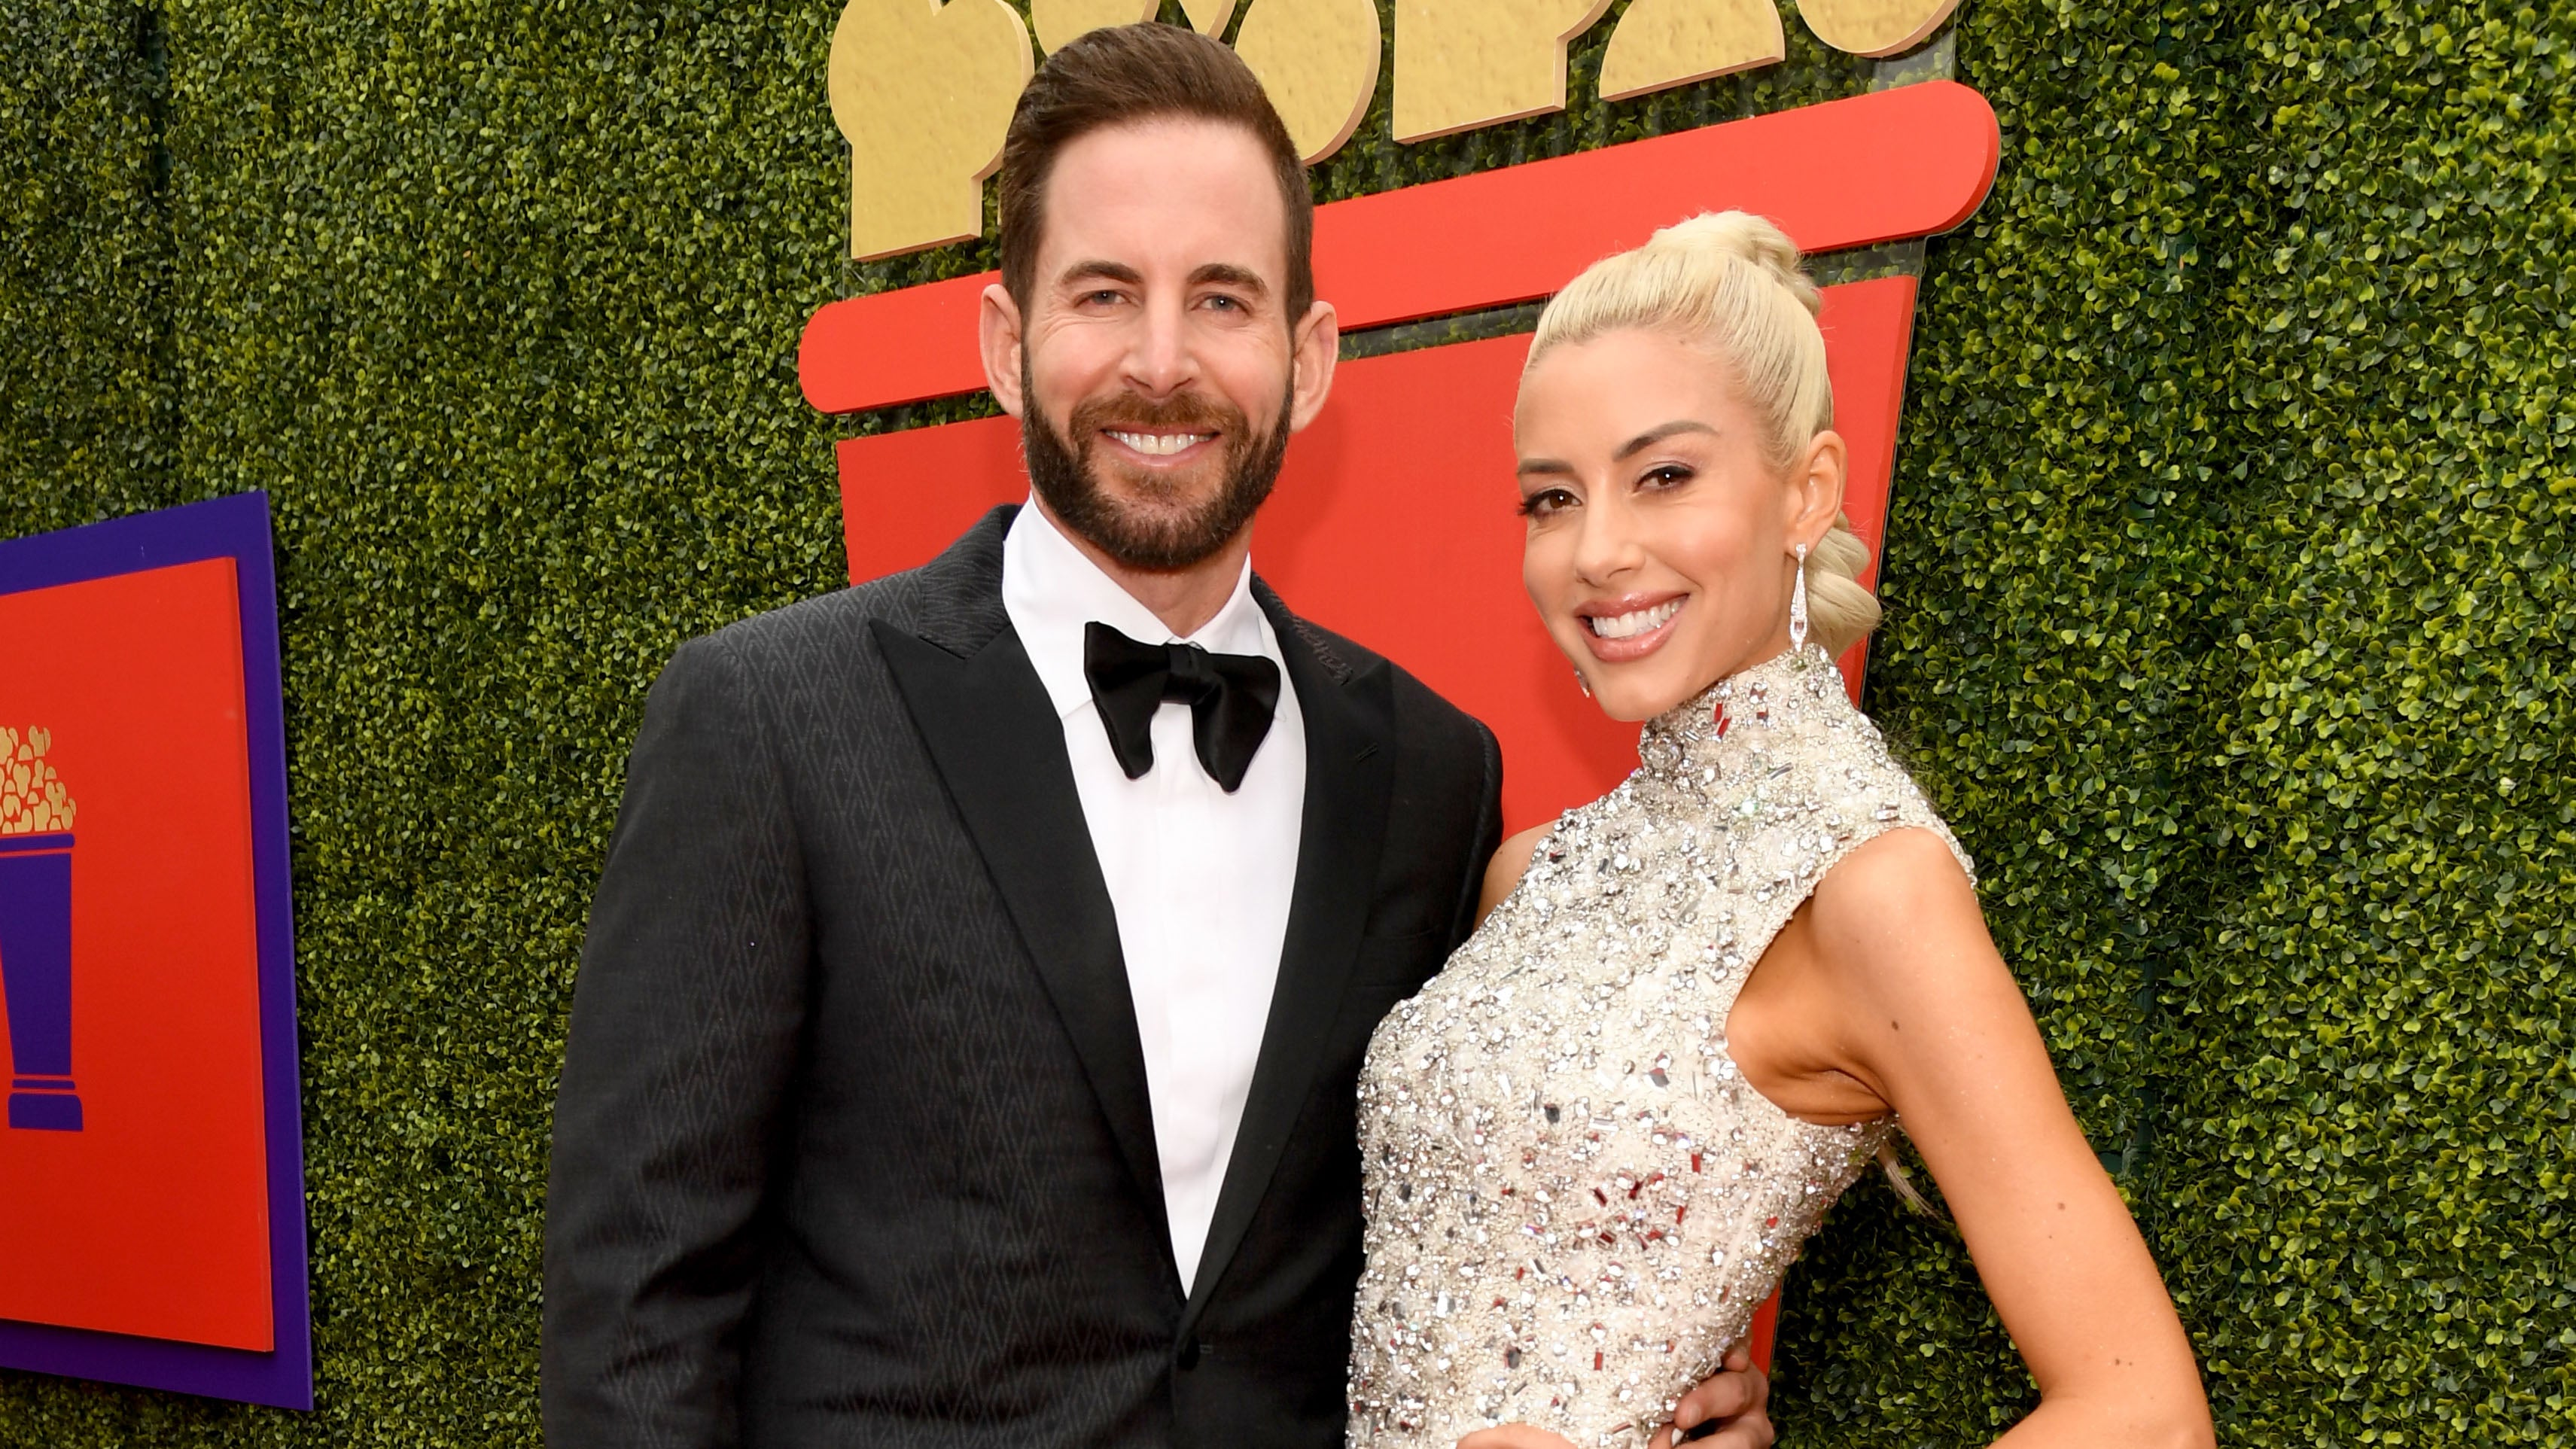 Tarek El Moussa and Heather Rae Young attend the 2021 MTV Movie & TV Awards: UNSCRIPTED in Los Angeles.